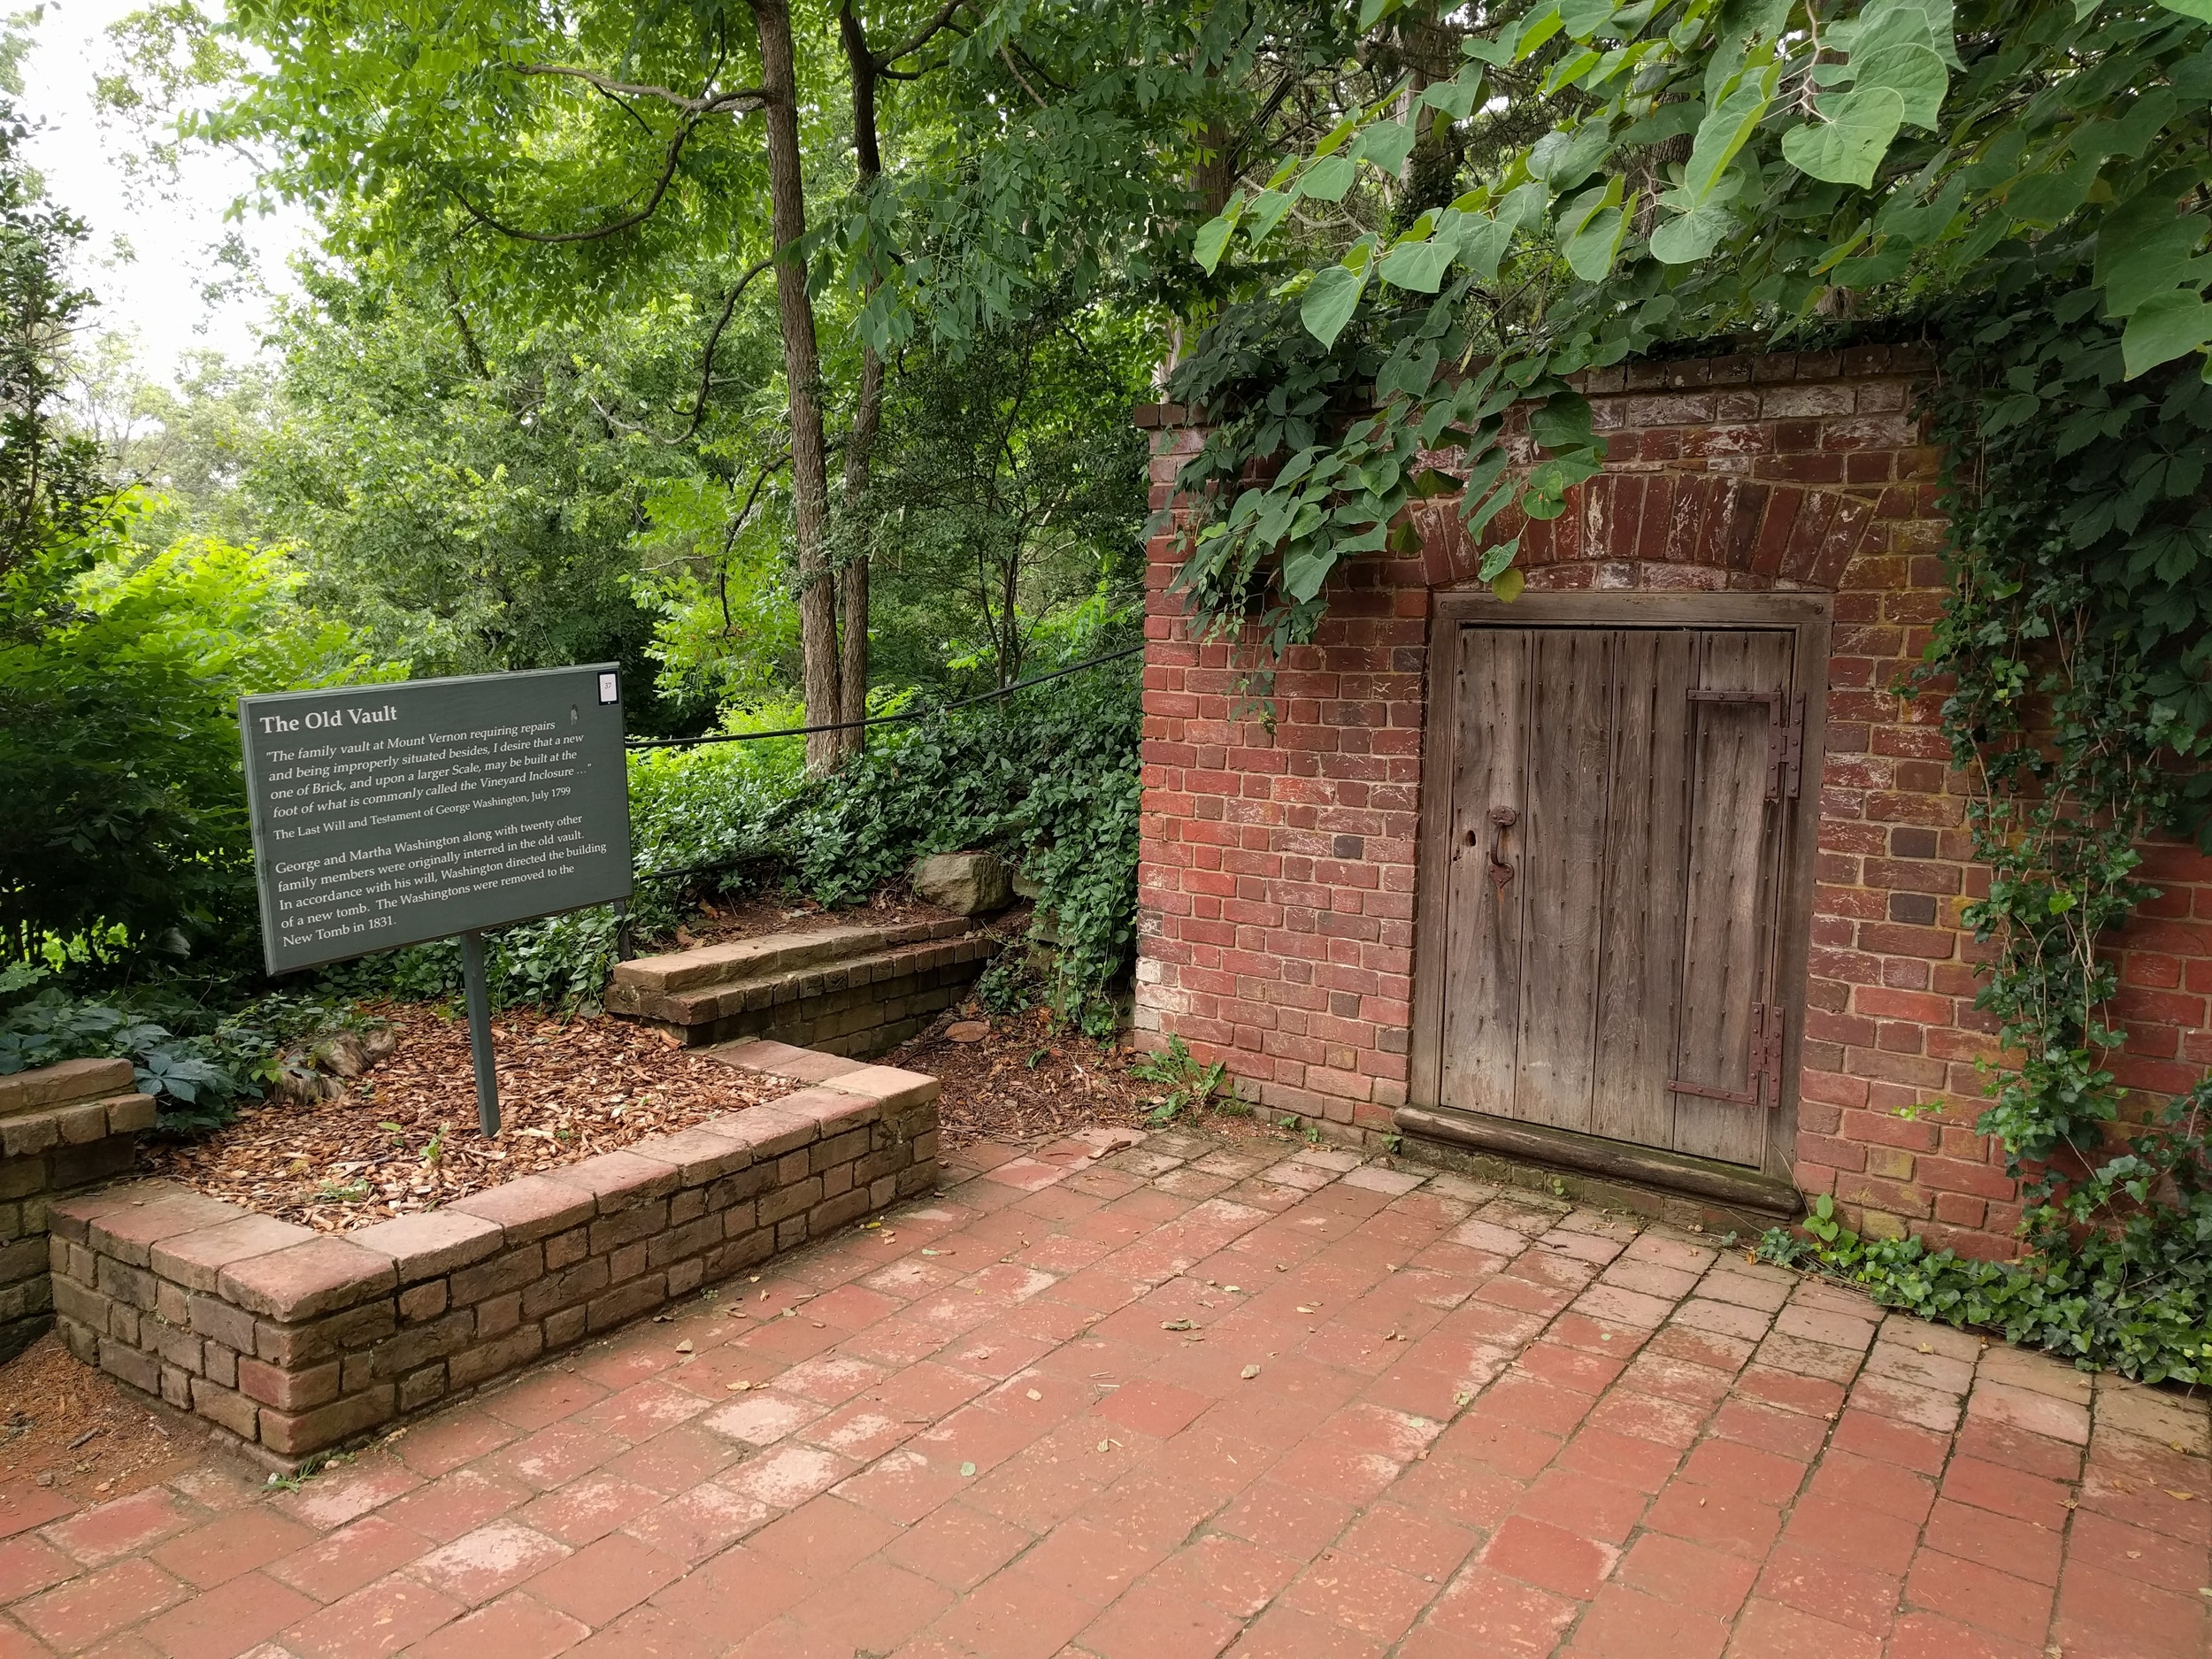 Where the Washingtons used to be buried